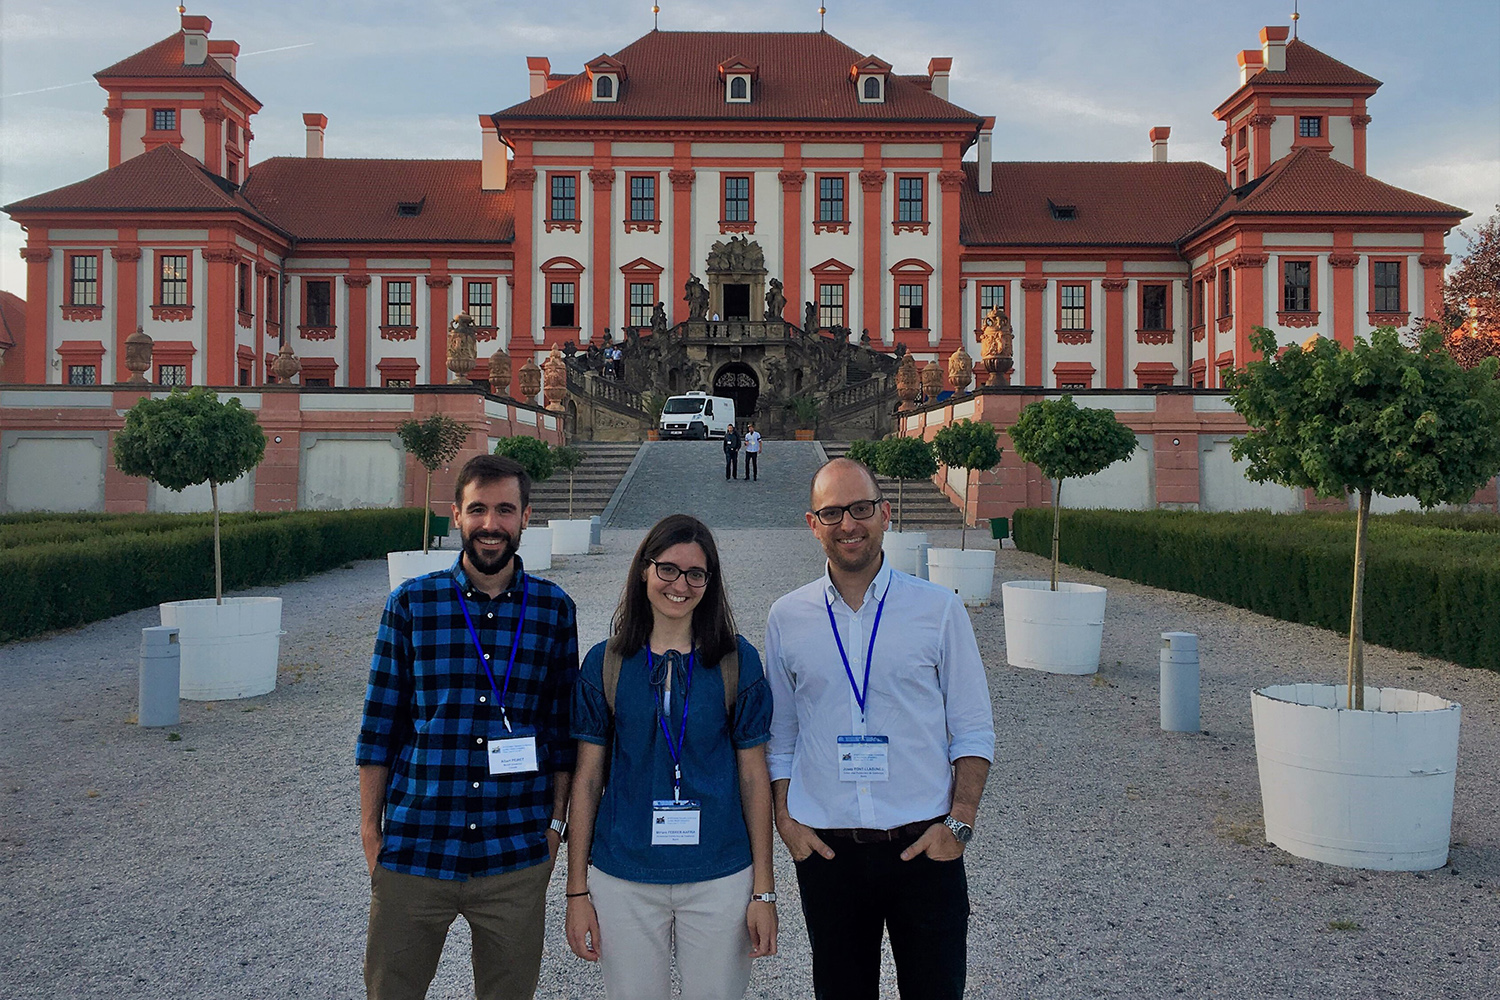 BIOMEC researchers at Multibody 2017 and ESB 2017